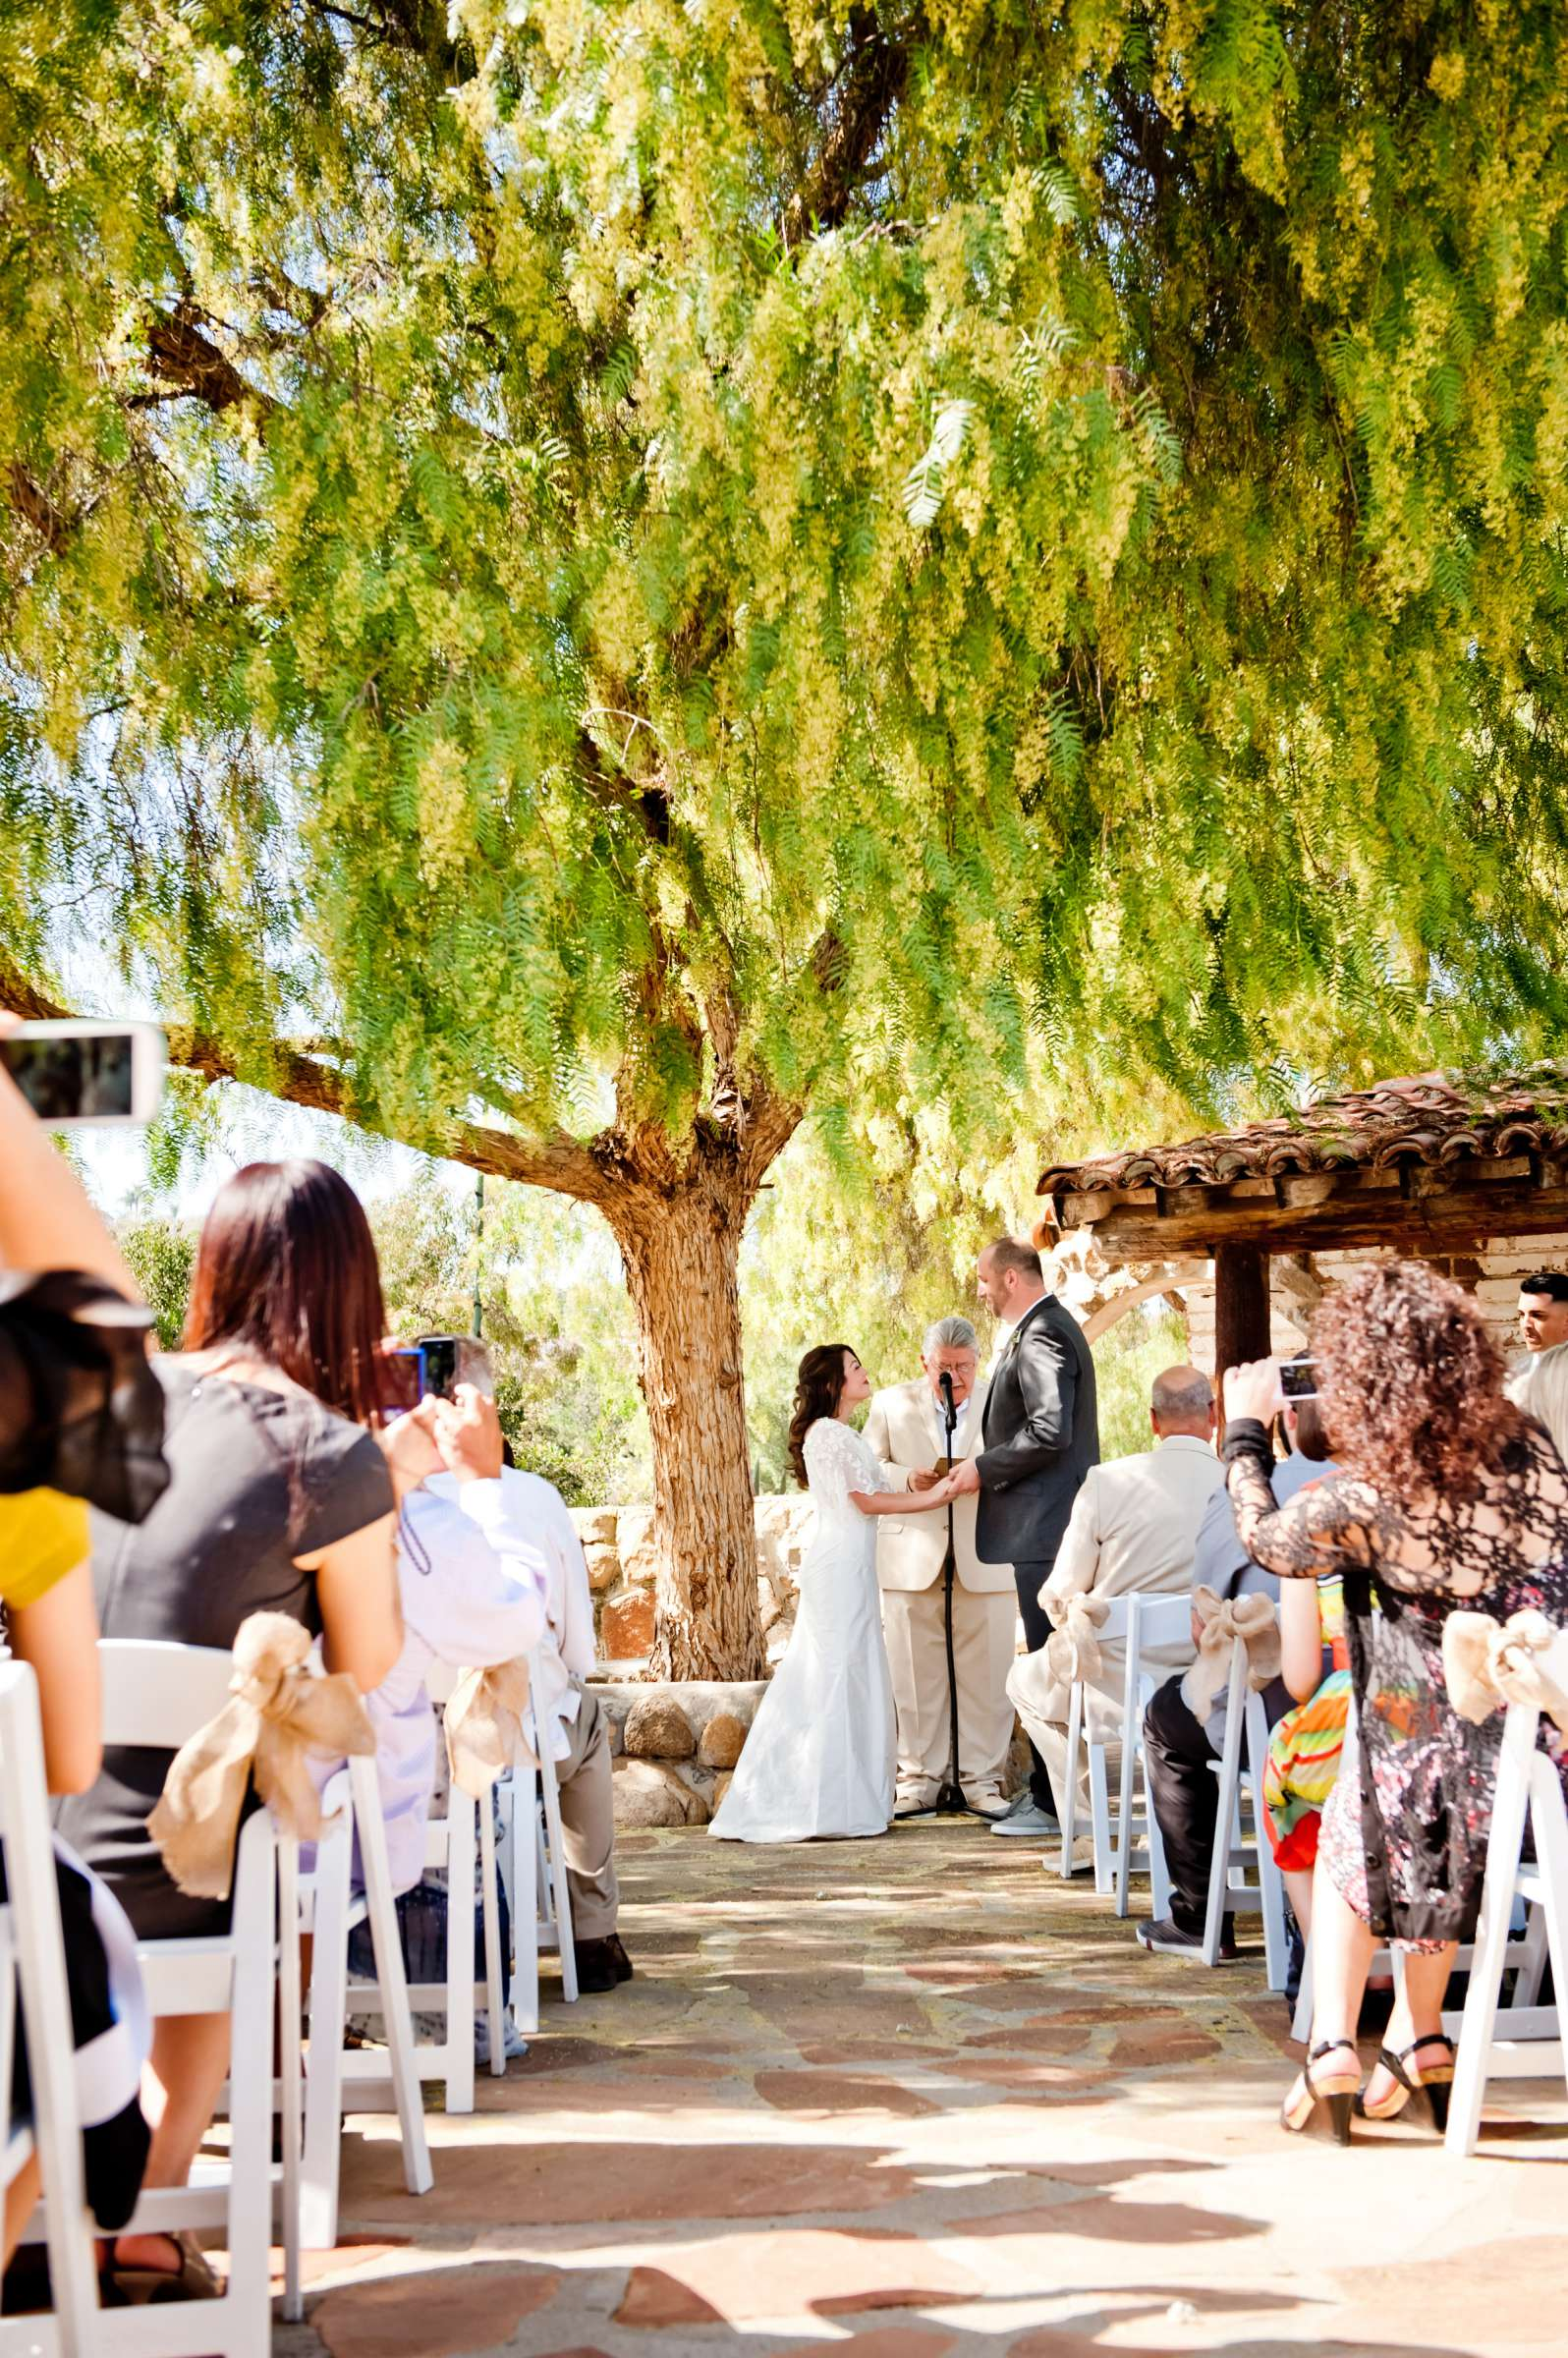 Leo Carrillo Ranch Wedding coordinated by Weddings by Lisa Nicole, Bethany and Aaron Wedding Photo #24 by True Photography